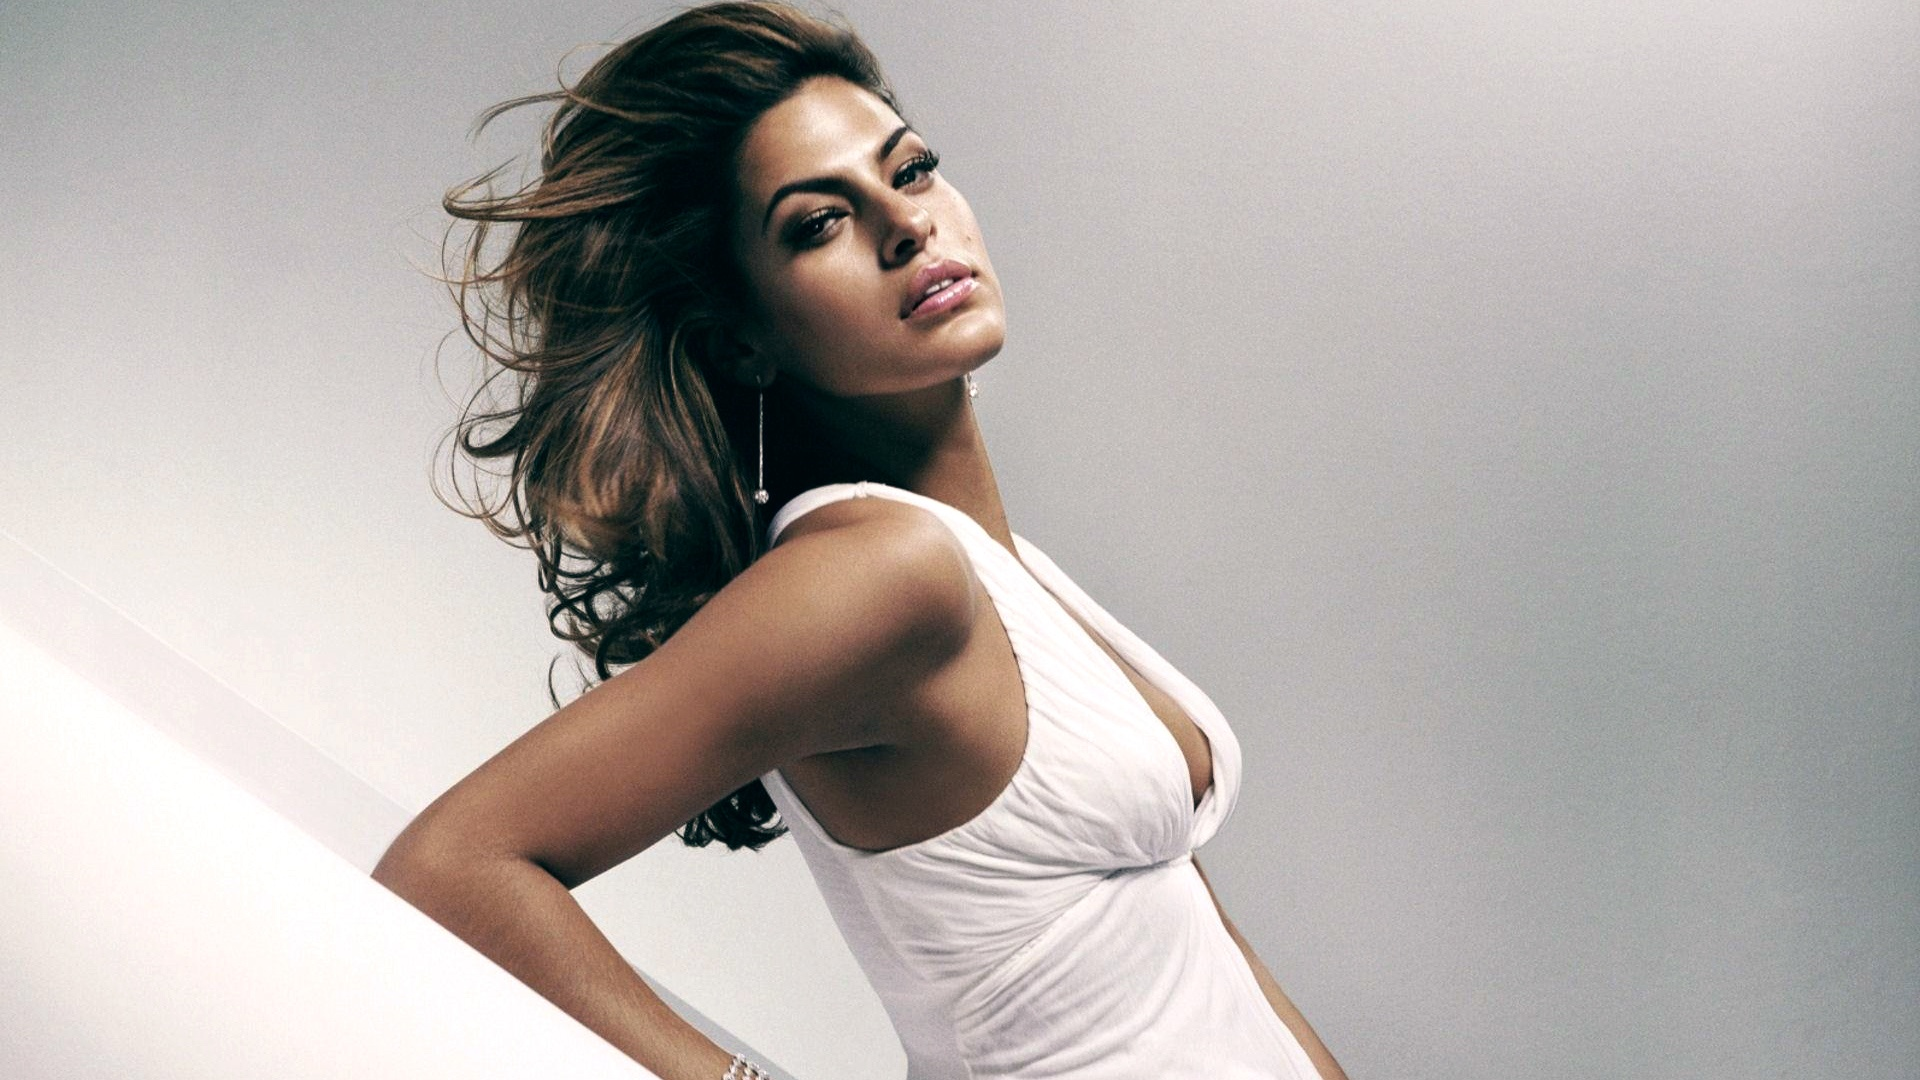 eva mendes wallpapers hd A2